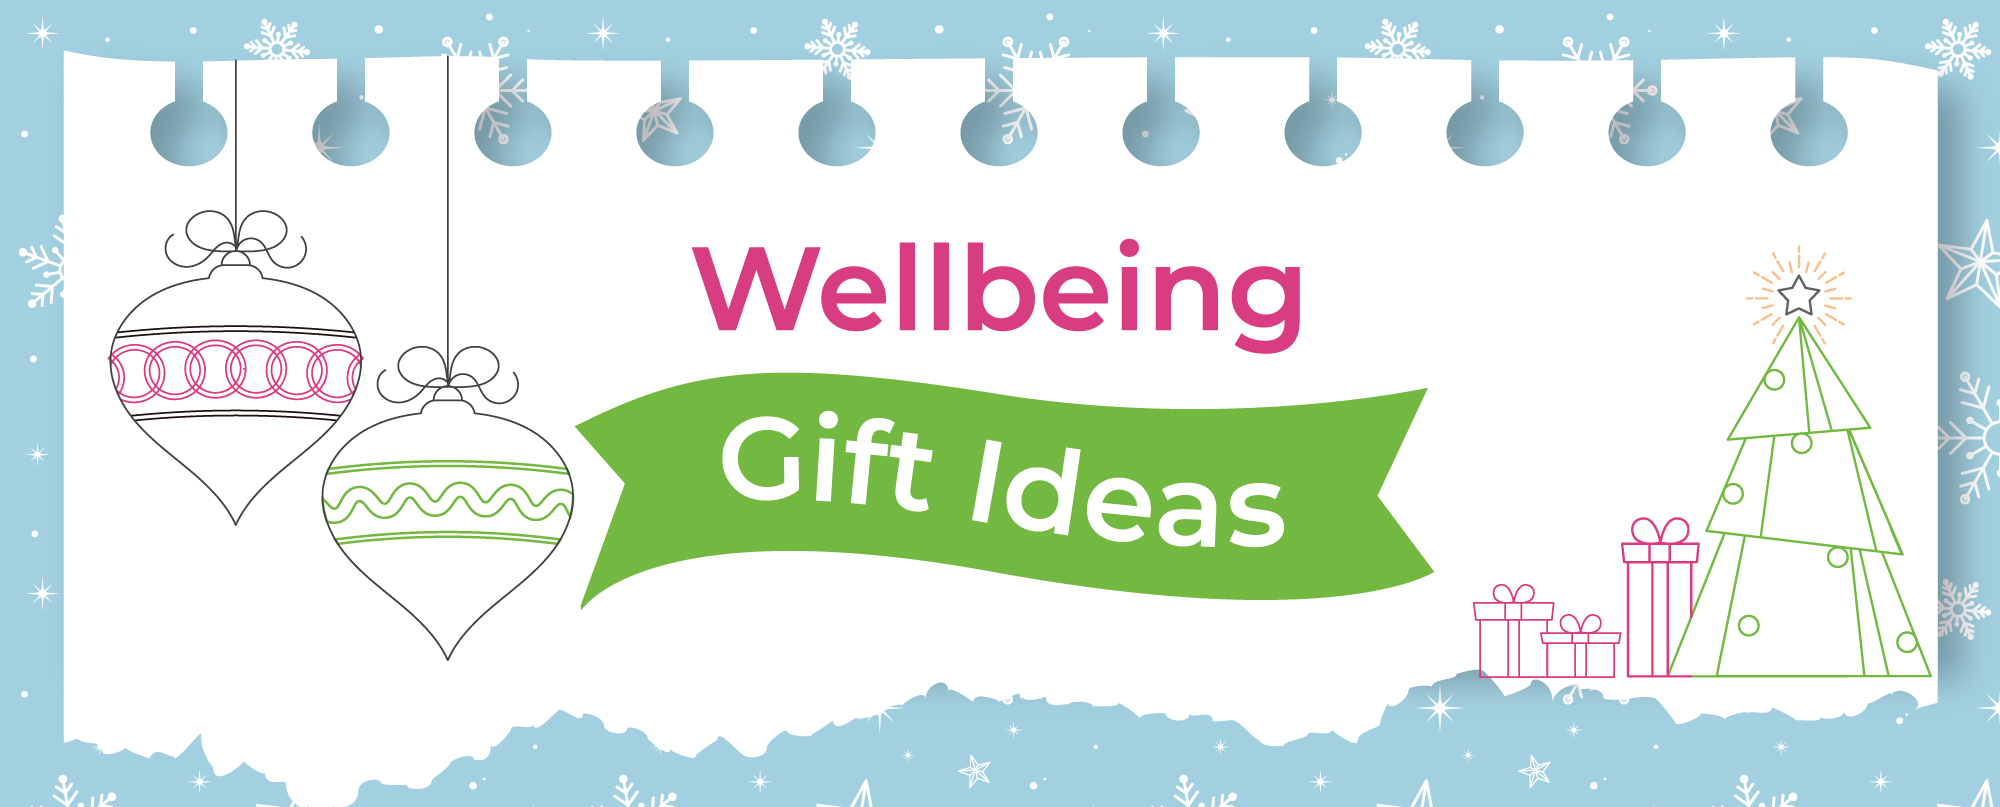 wellbeing gift